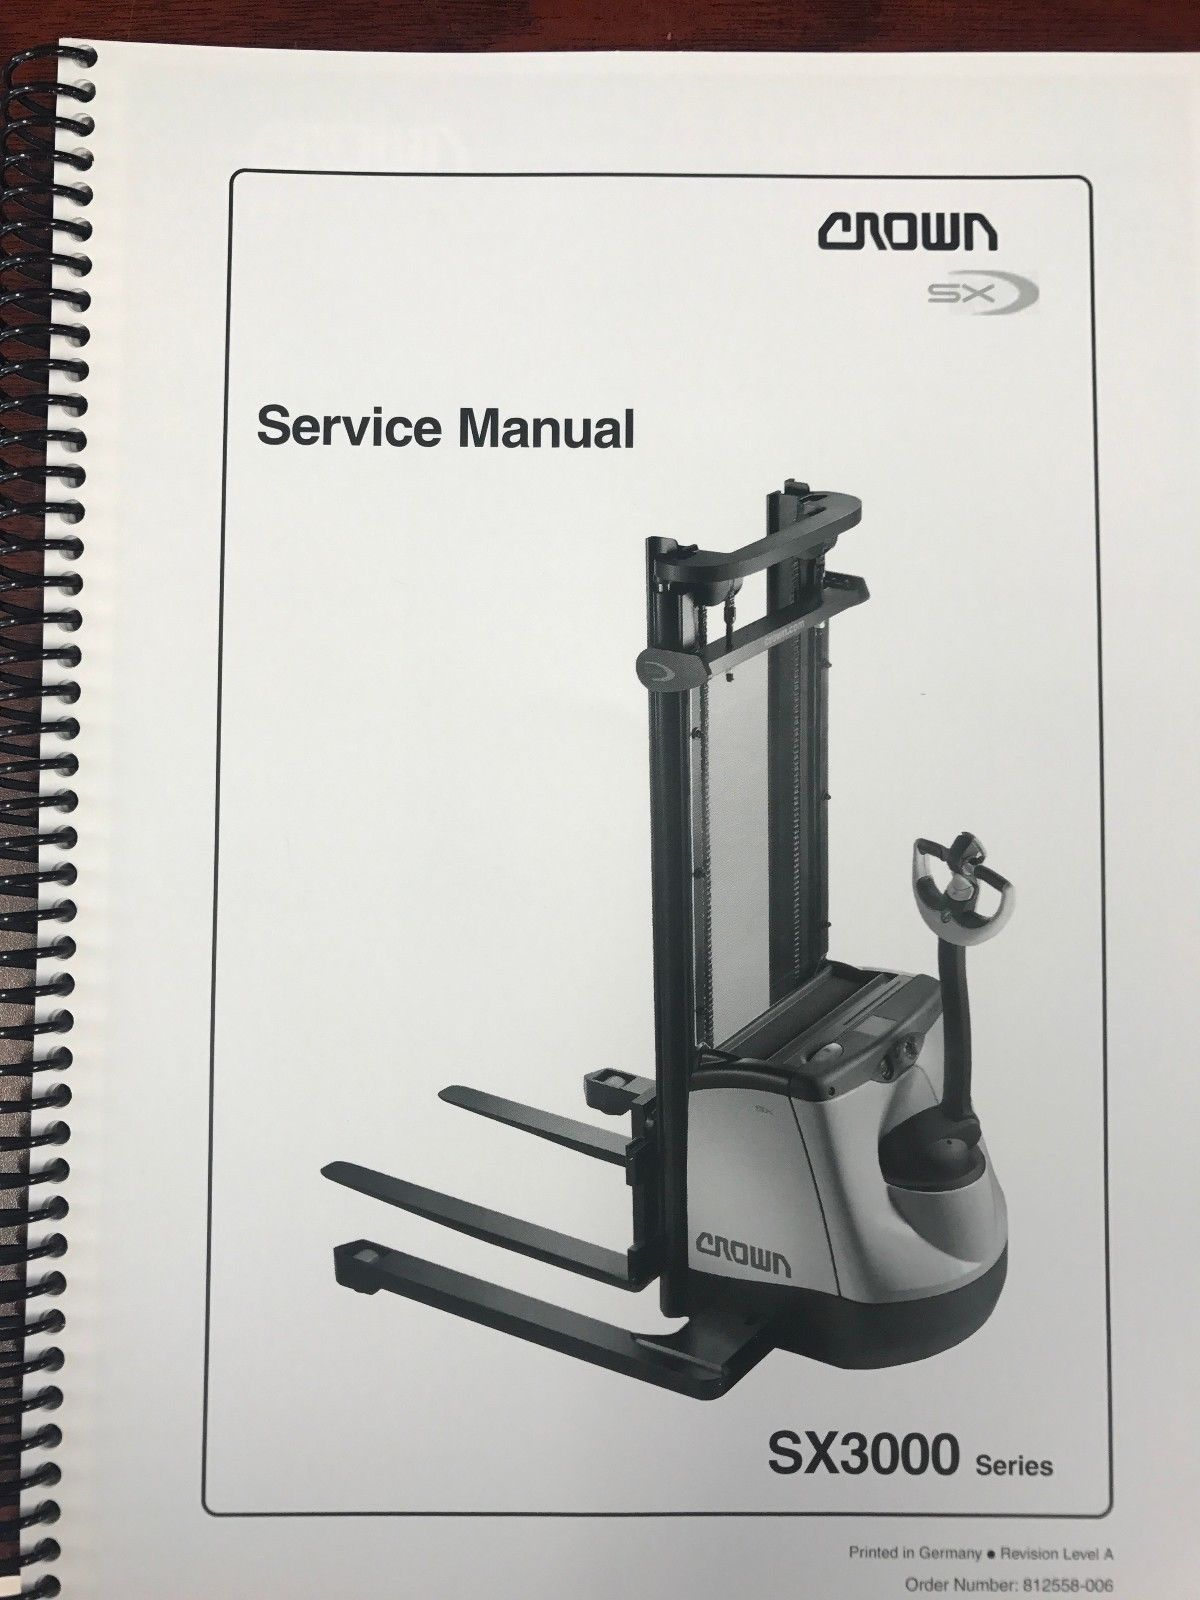 hight resolution of crown truck pw 3000 series operator 39 s manual pdf download there s no debate when you choose crown s xti work assist vehicle